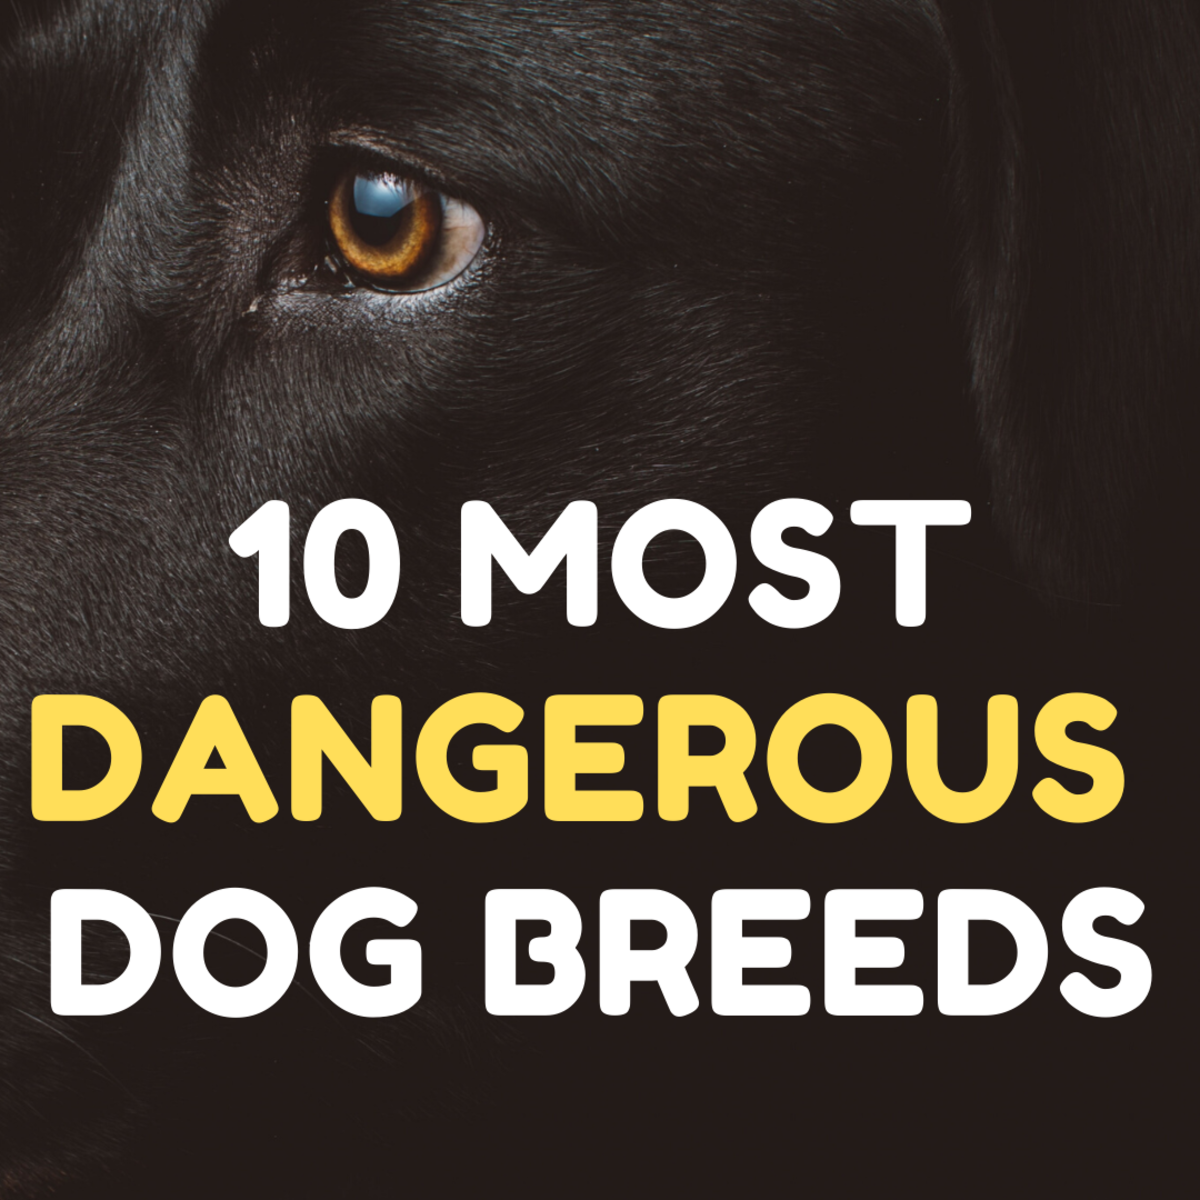 The 10 Most Dangerous Dog Breeds